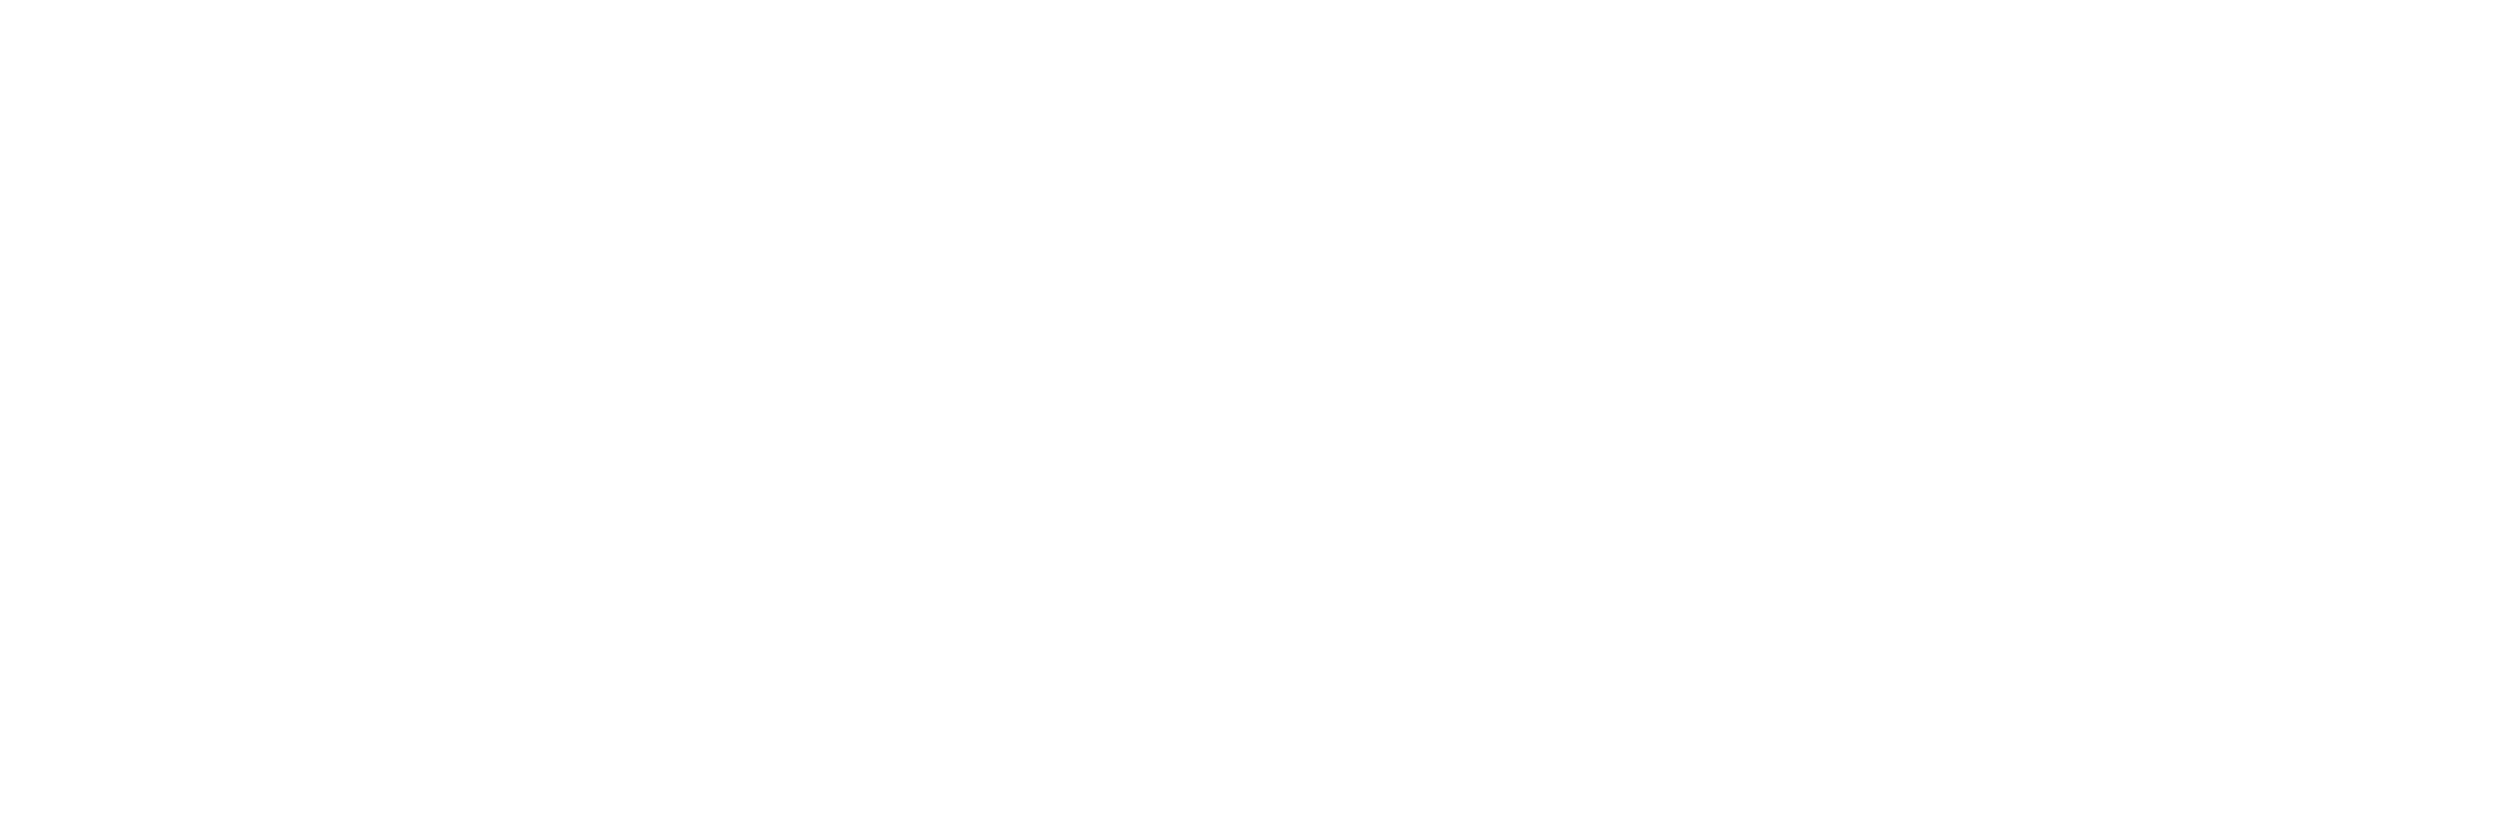 professional beauty association - white.png